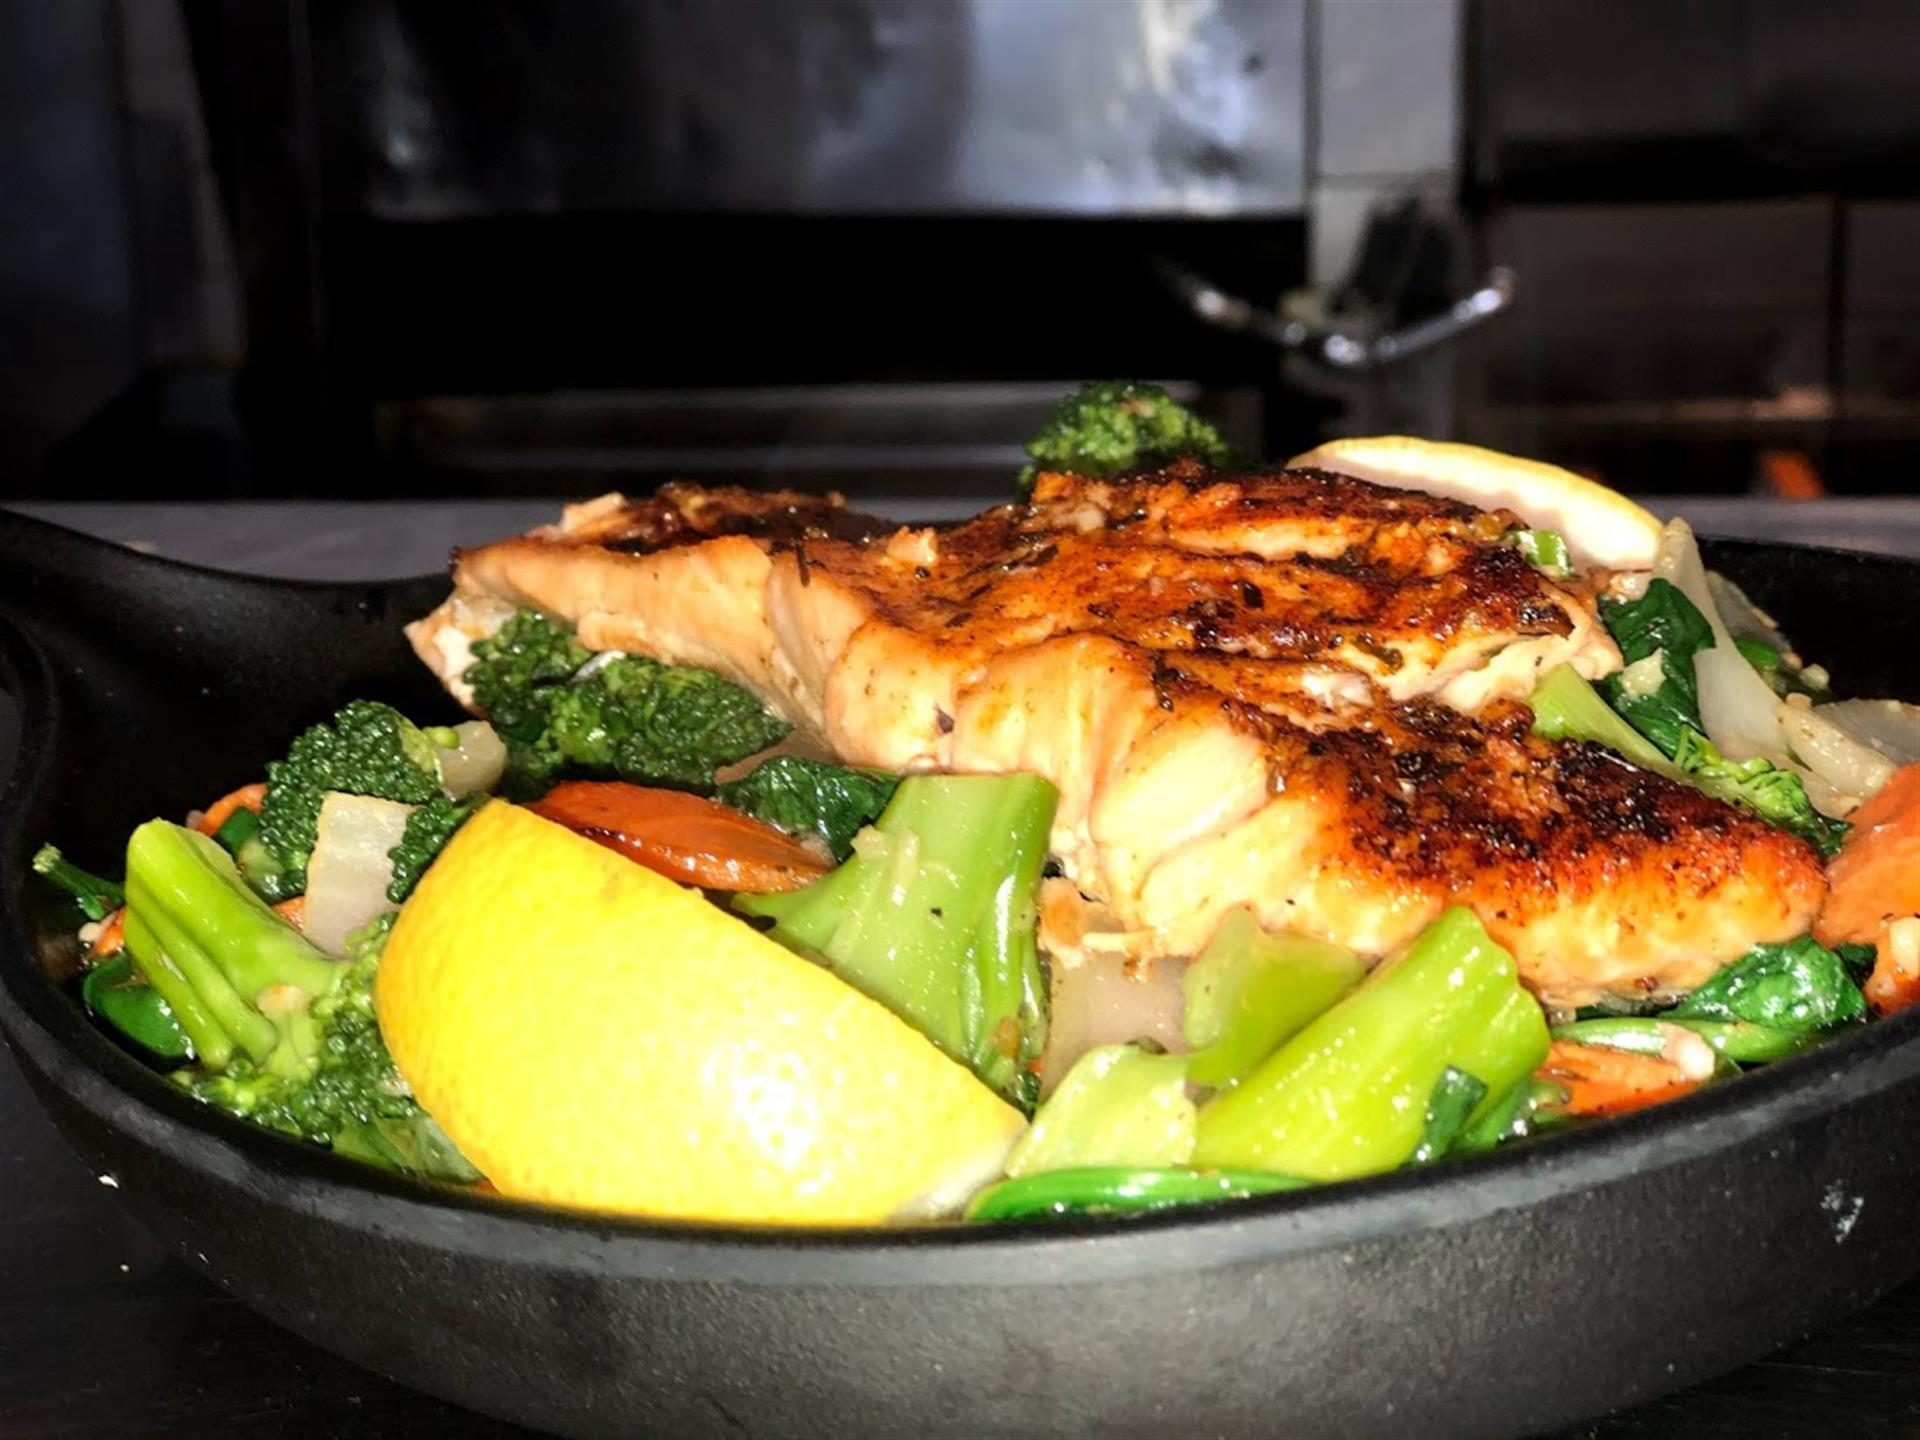 salmon skillet with veggies